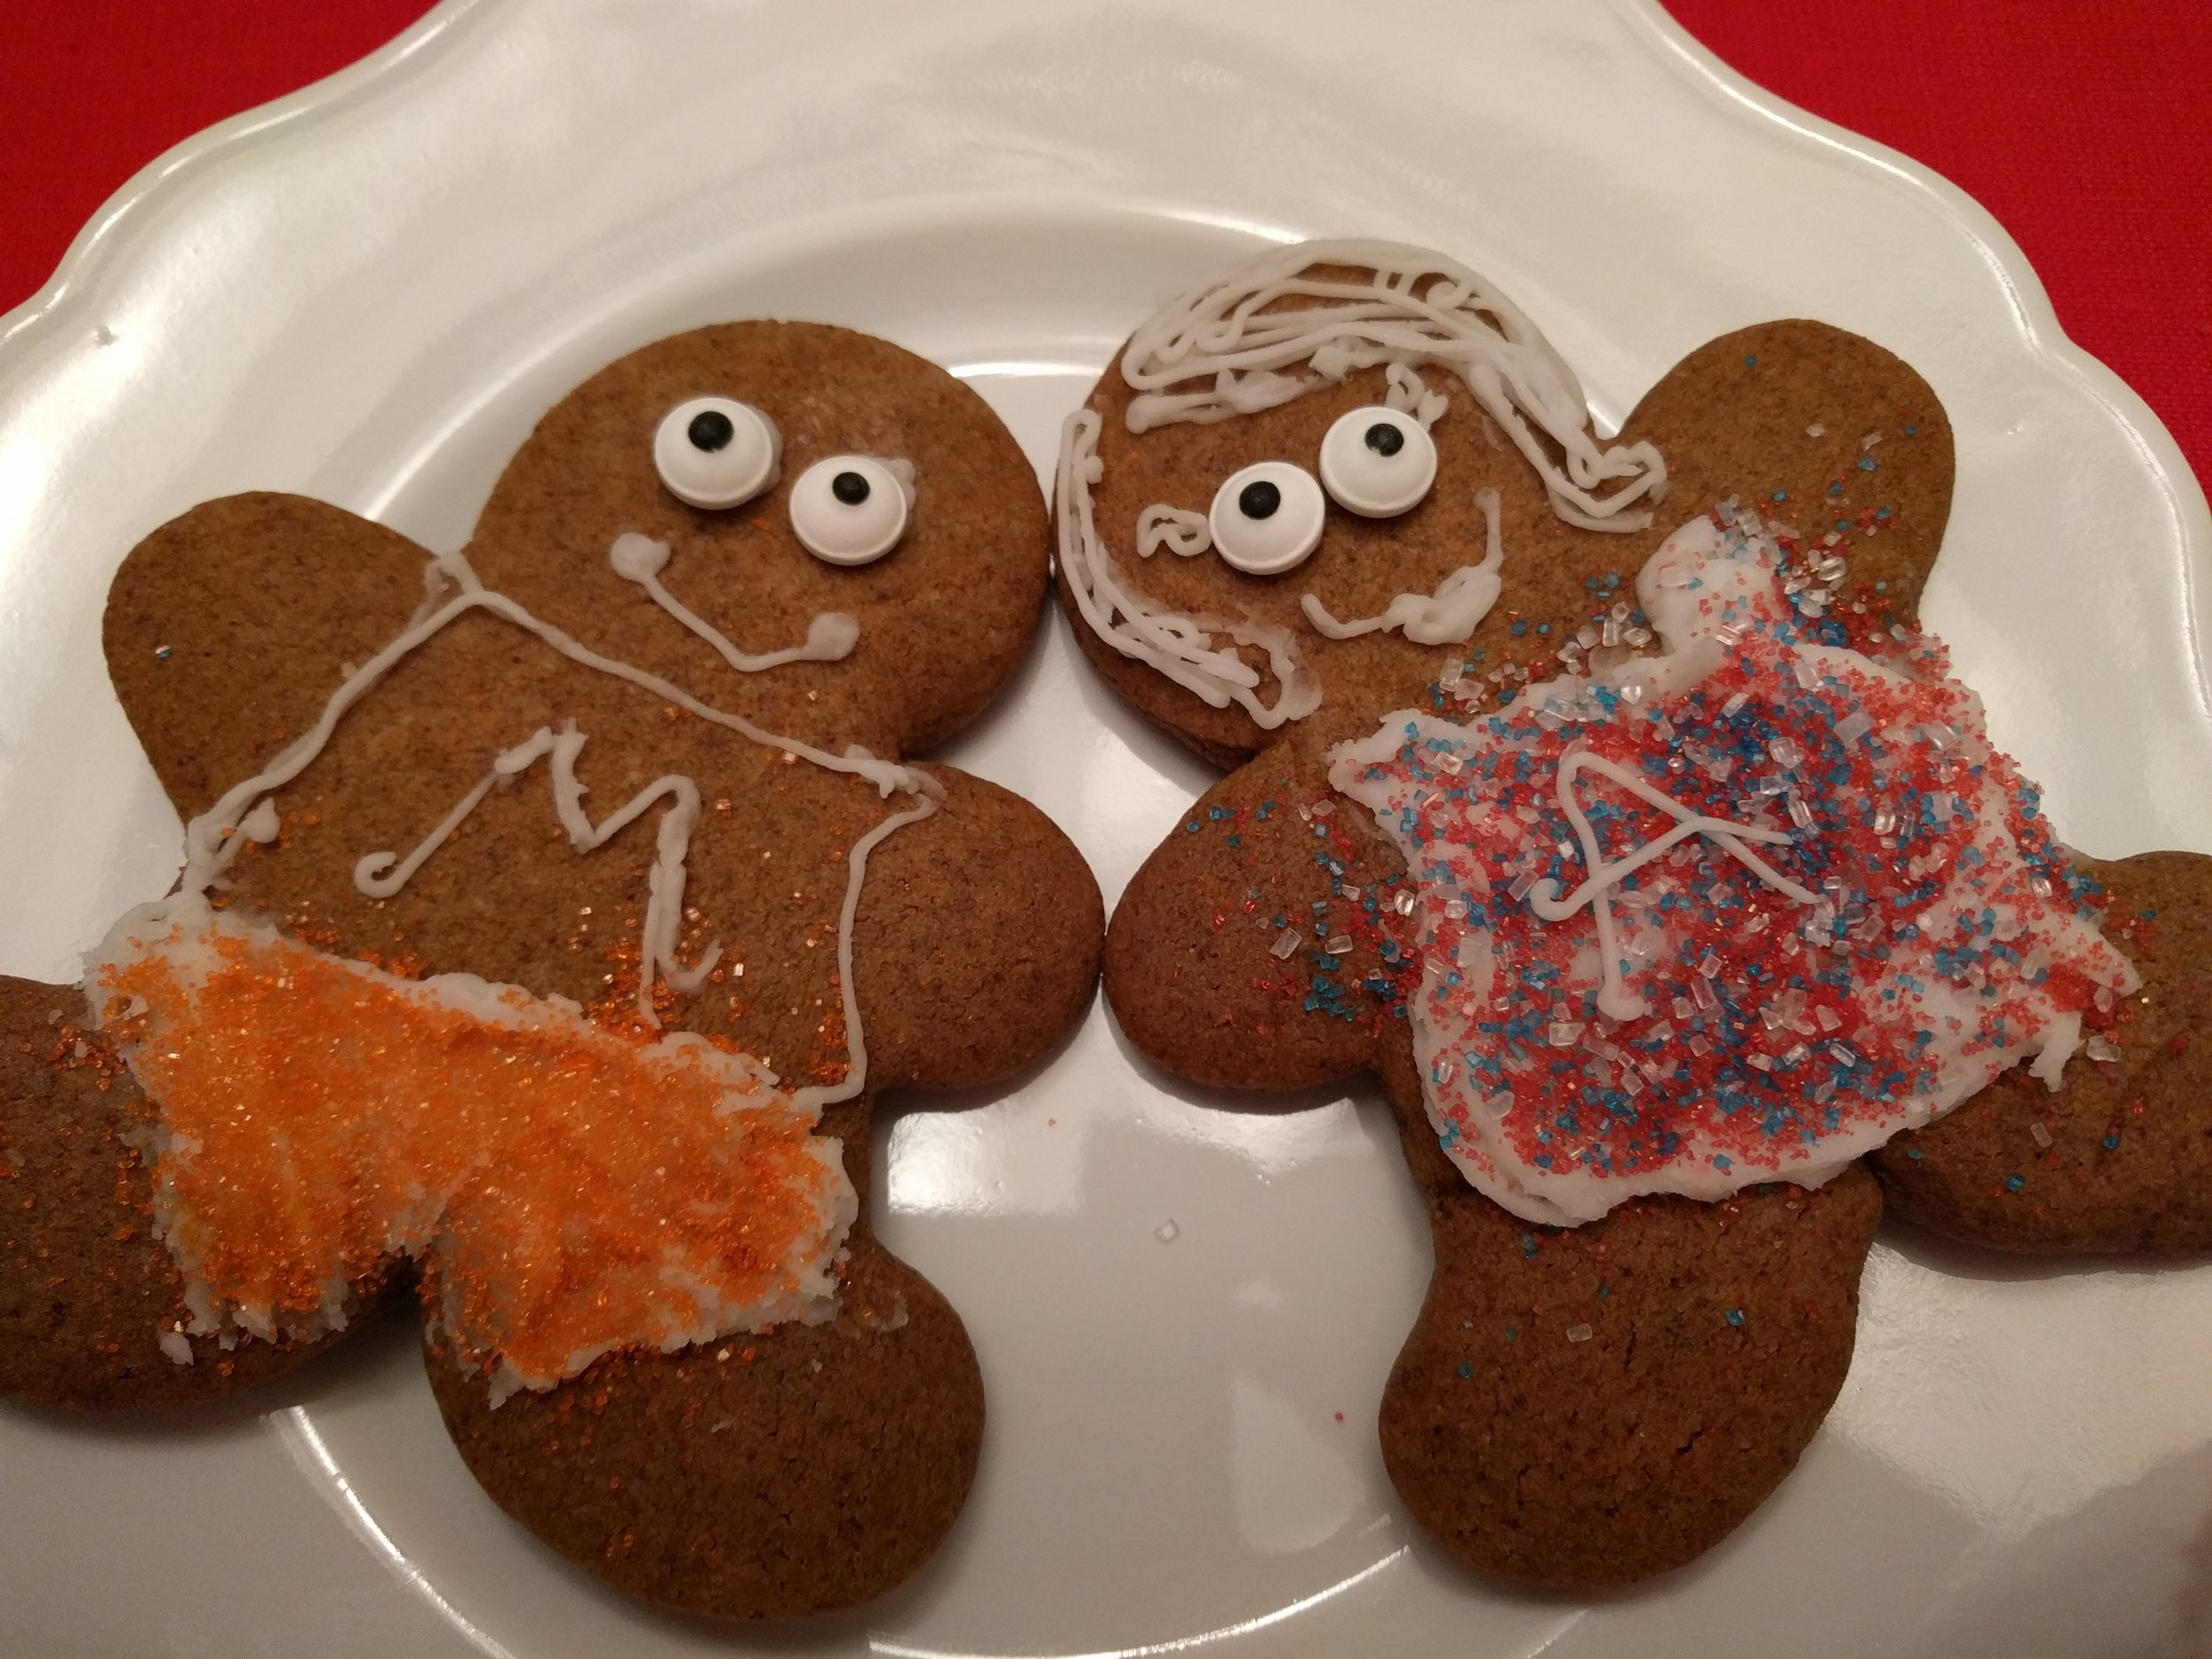 Forgot to give Gingerbread Matthew any hair! Whoops!